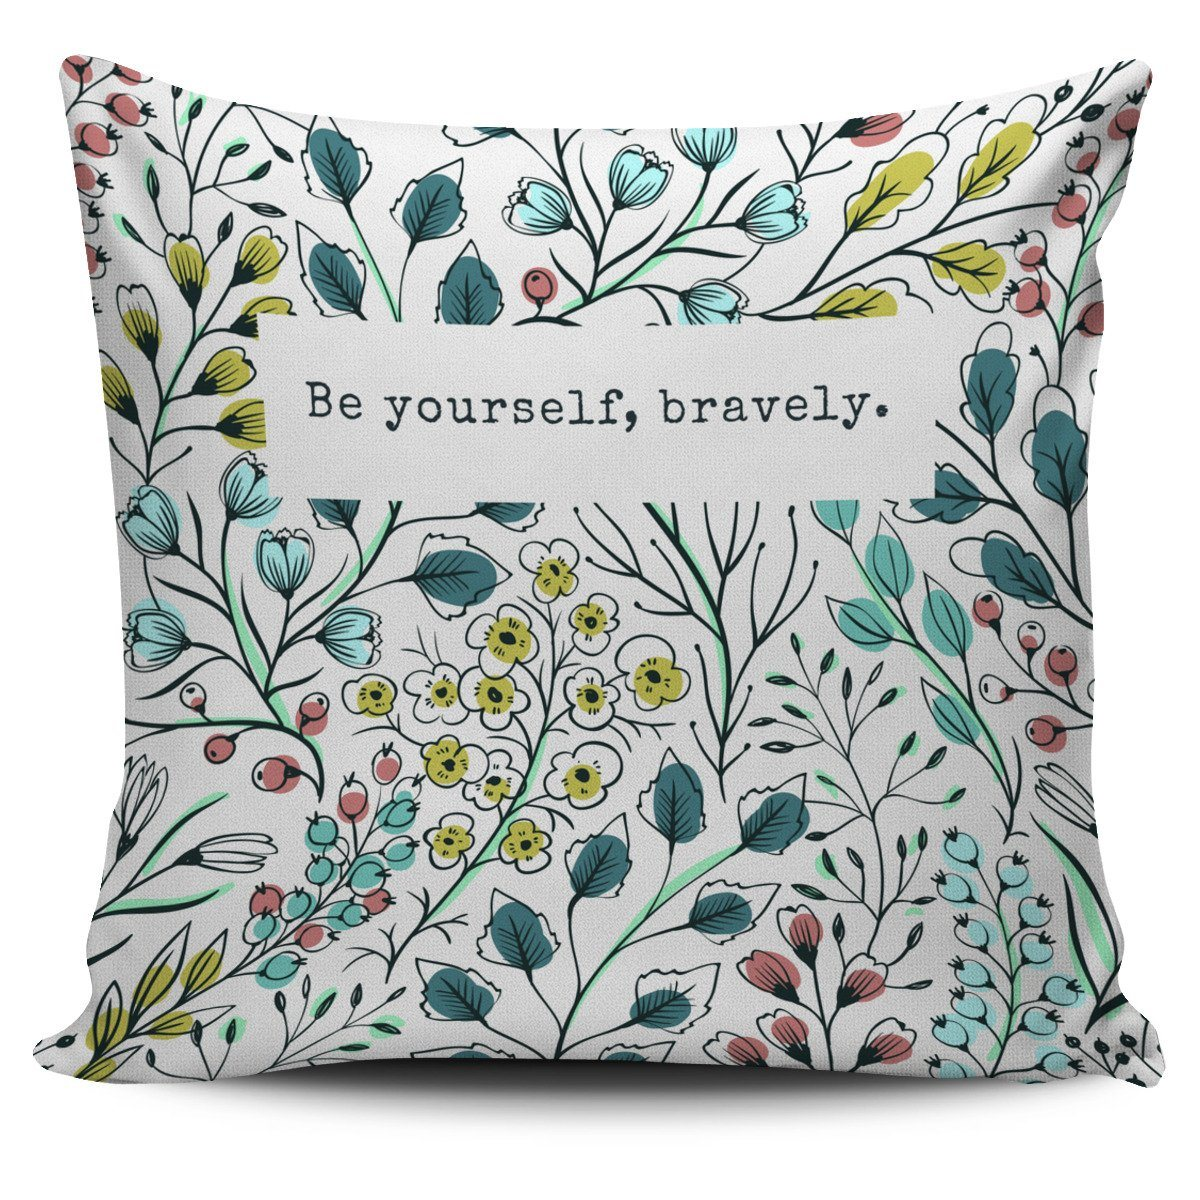 """Be yourself, bravely."" Pillow Cover"